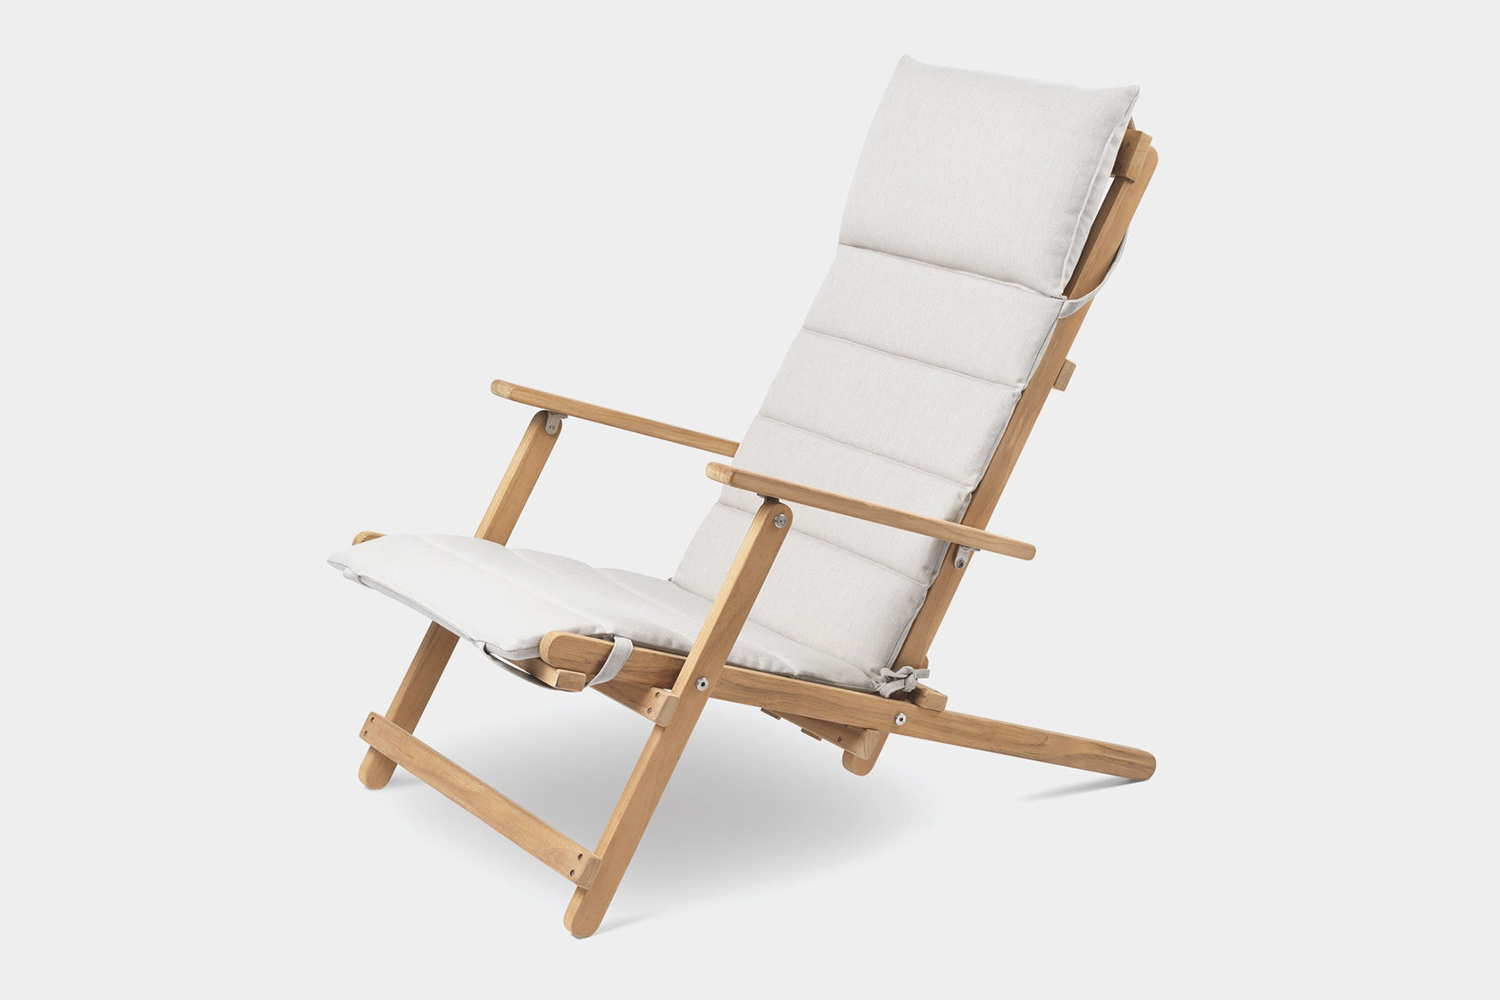 Deck Folding Lounge Chair from Design Within Reach